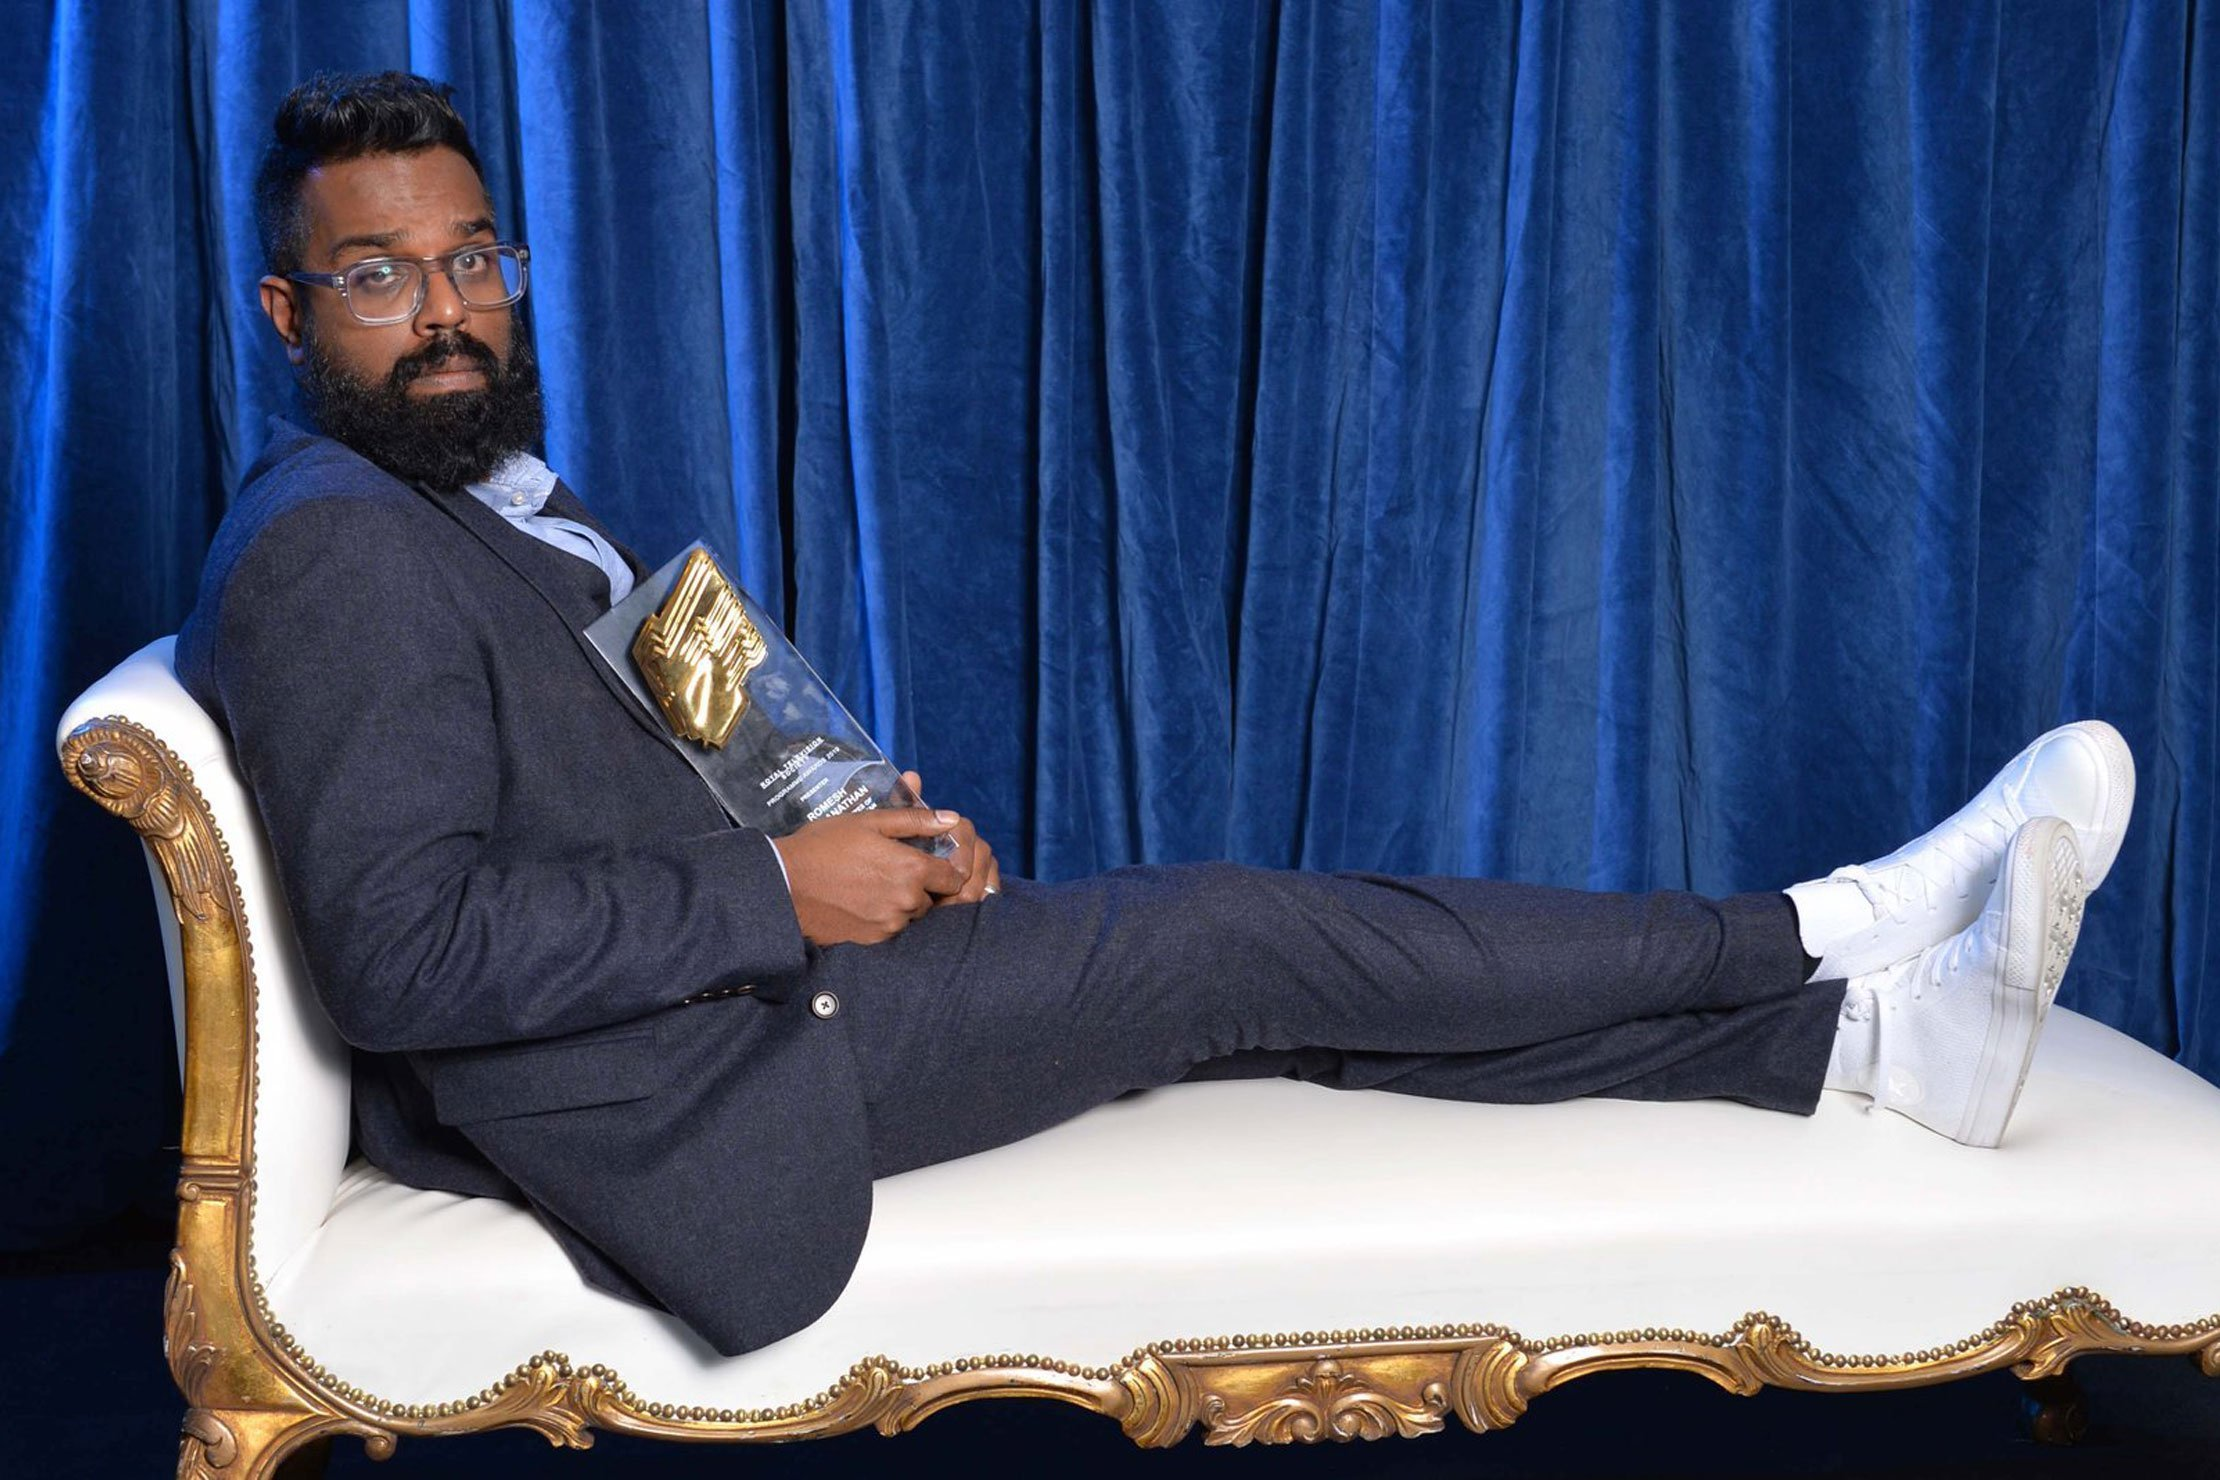 ROMESH RANGANATHAN AND THE LAST LEG WIN ROYAL TELEVISION SOCIETY AWARDS